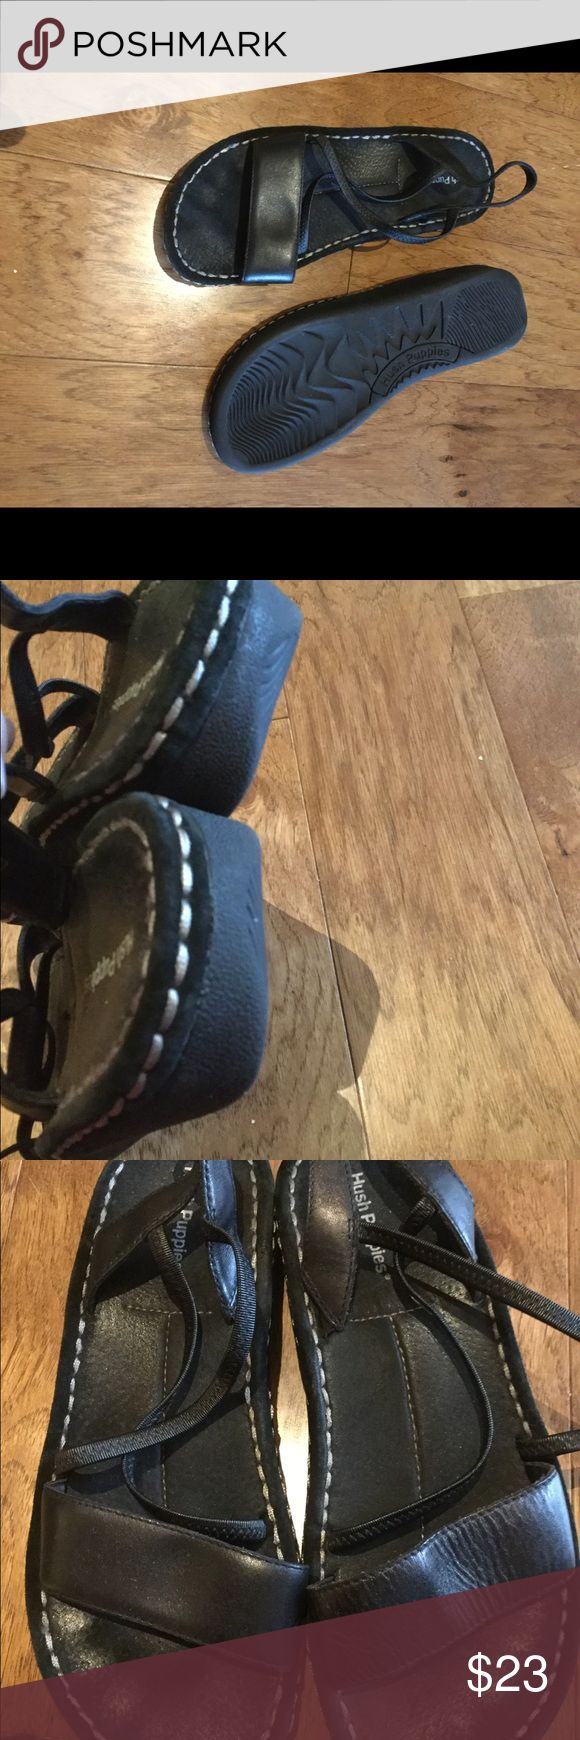 Hush puppies low platform sandal mint 9 leather Like new condition super comfy Hush Puppies Shoes Sandals